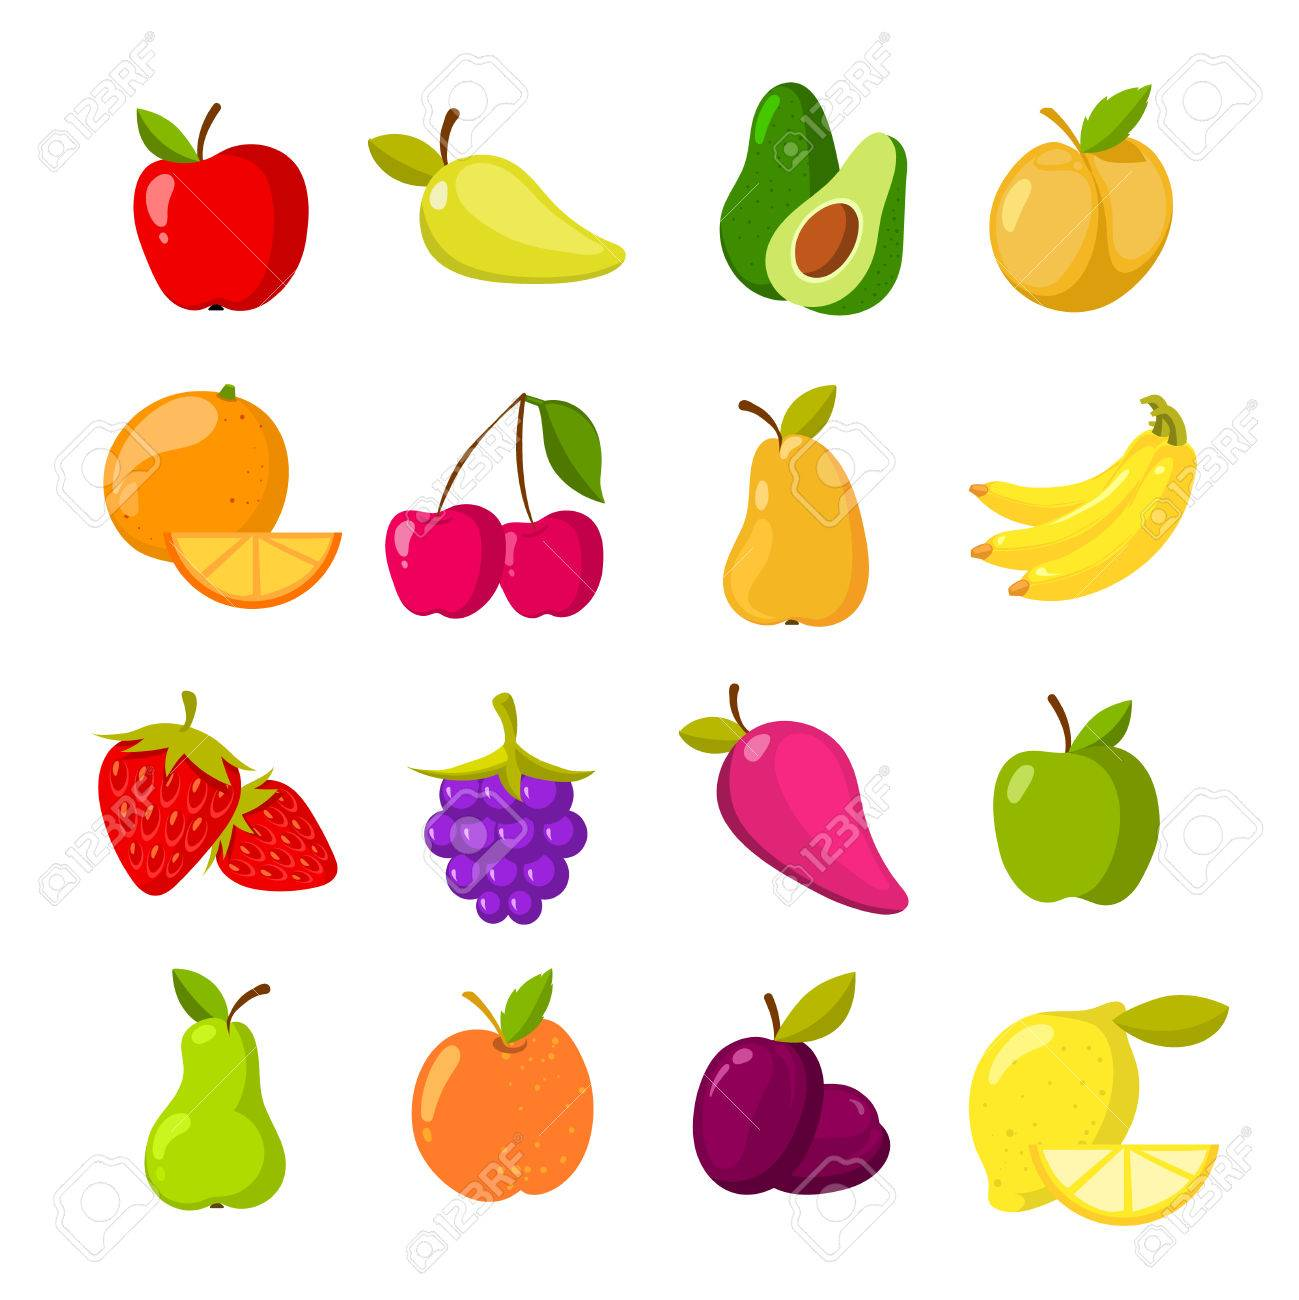 Cartoon fruits vector clipart collection isolated.